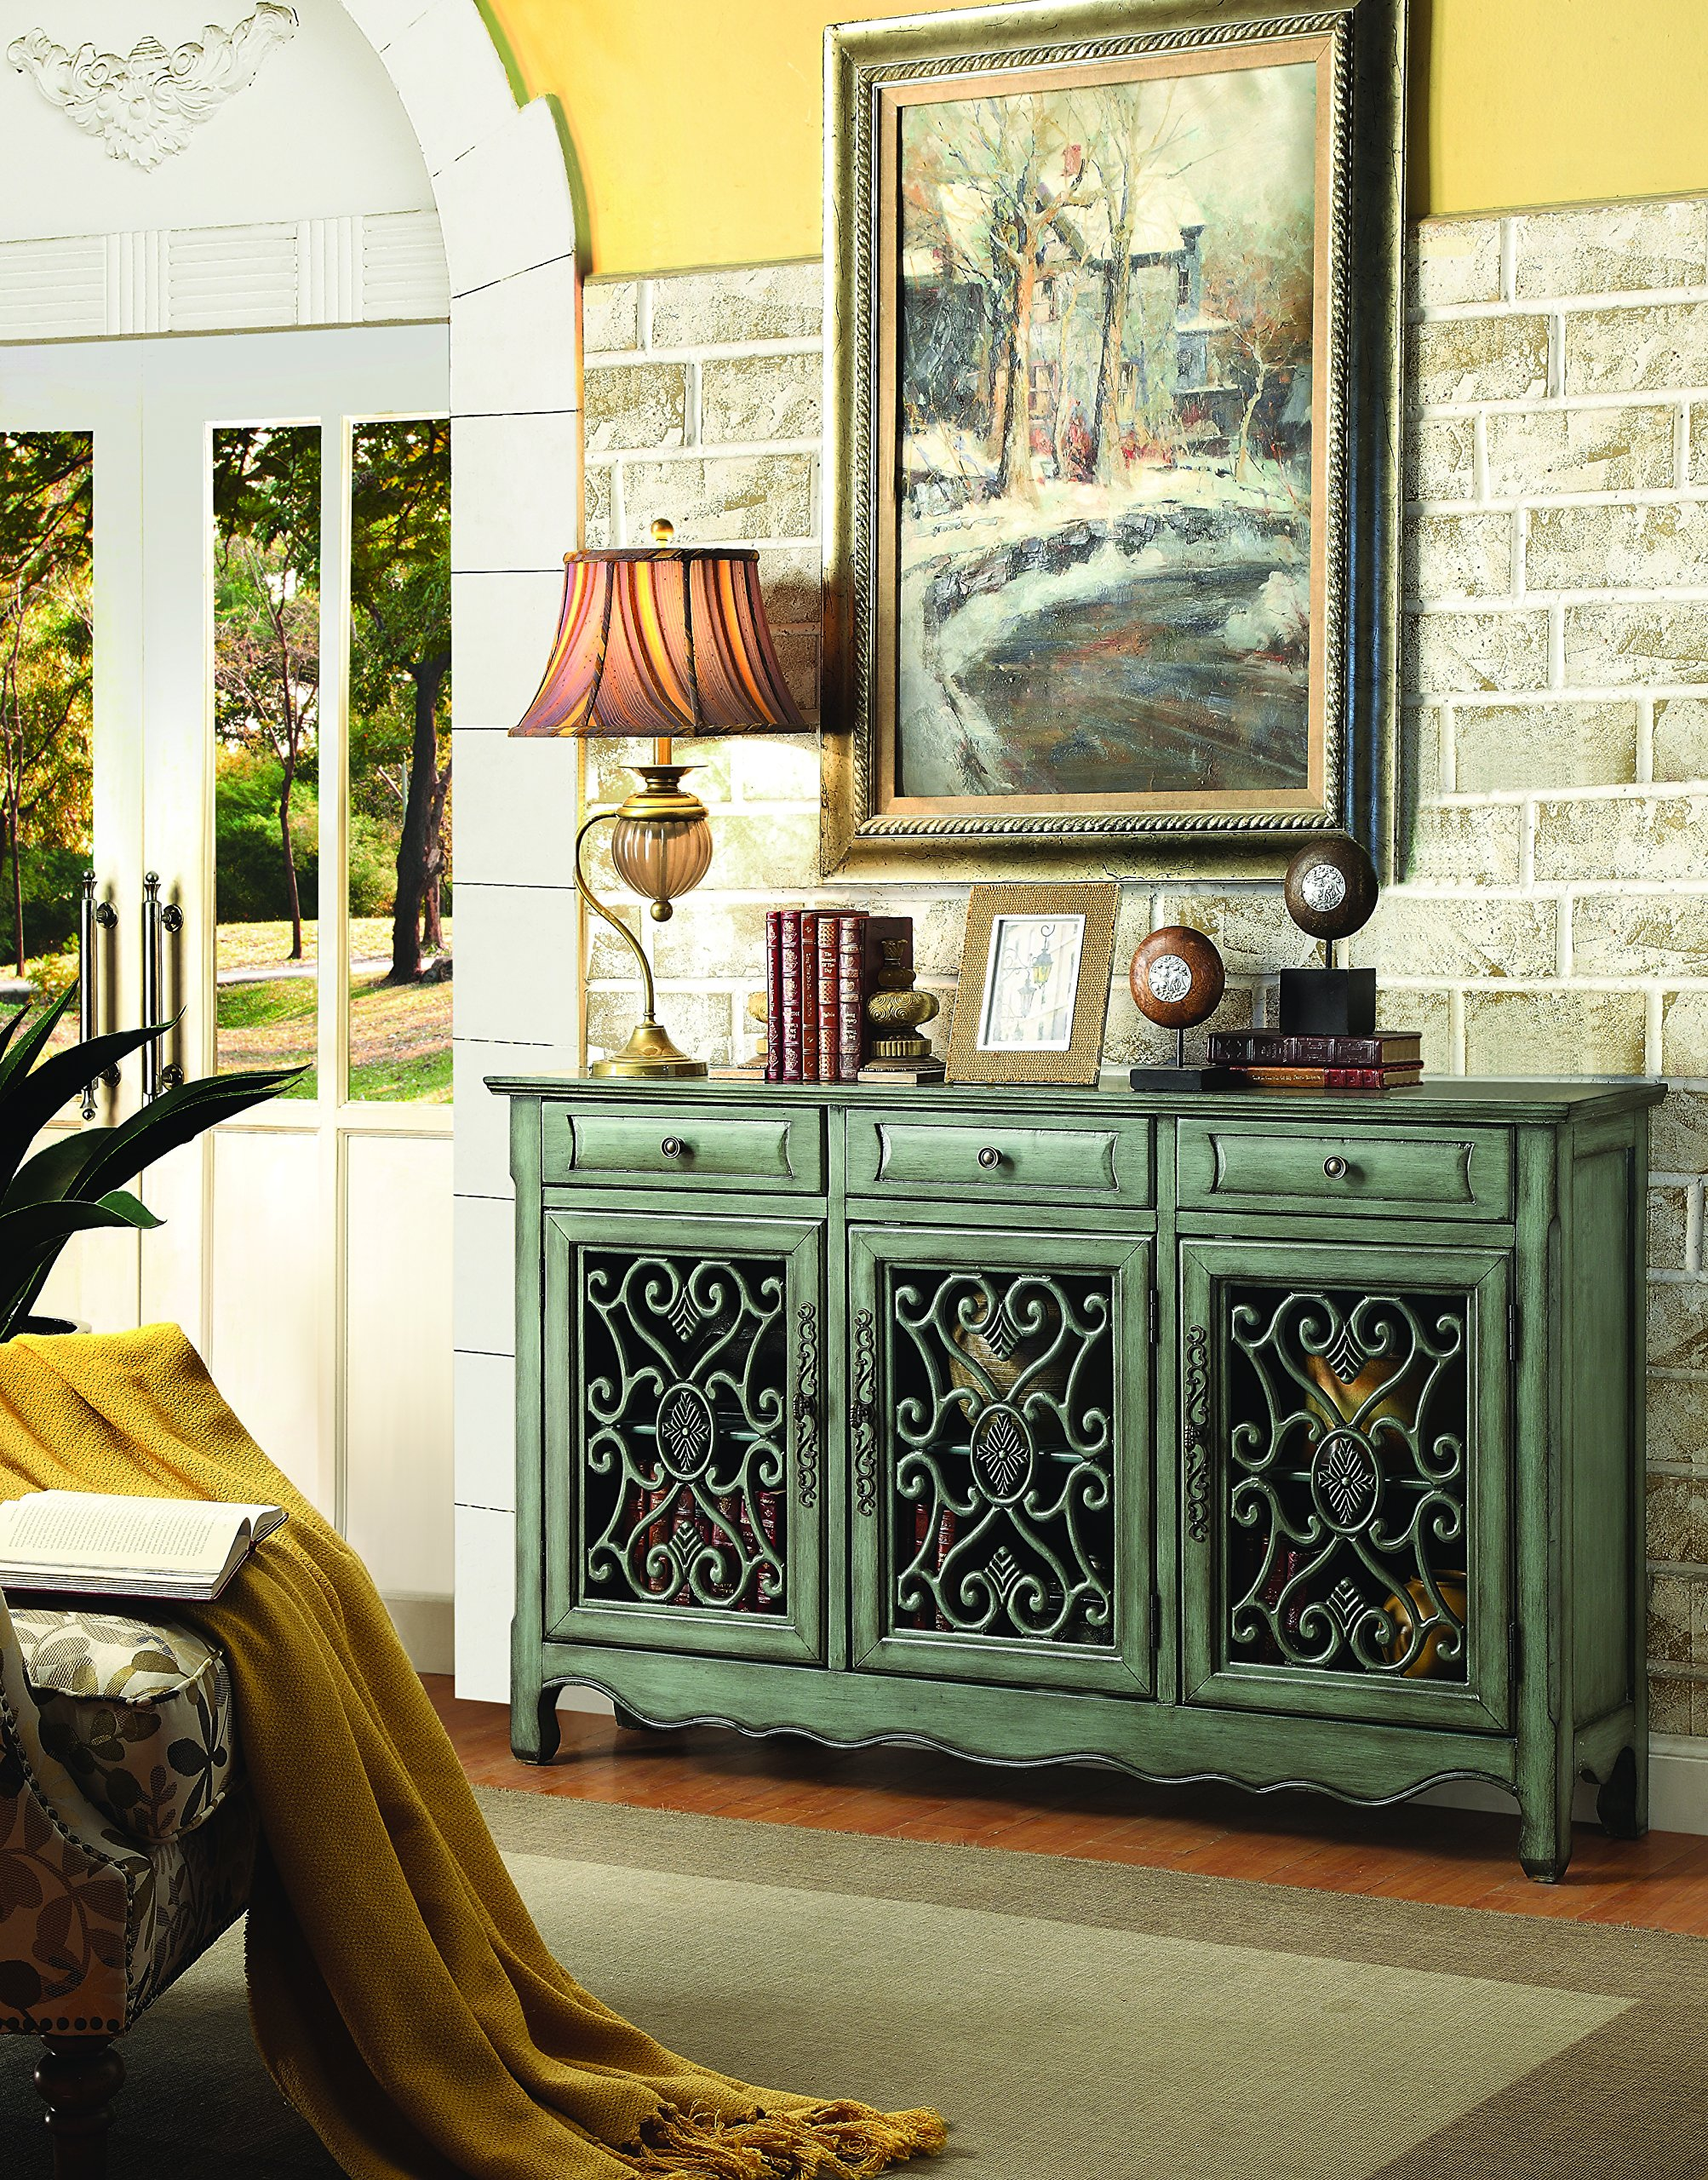 Coaster Home Furnishings 950357 Accent Cabinet, Antique Green